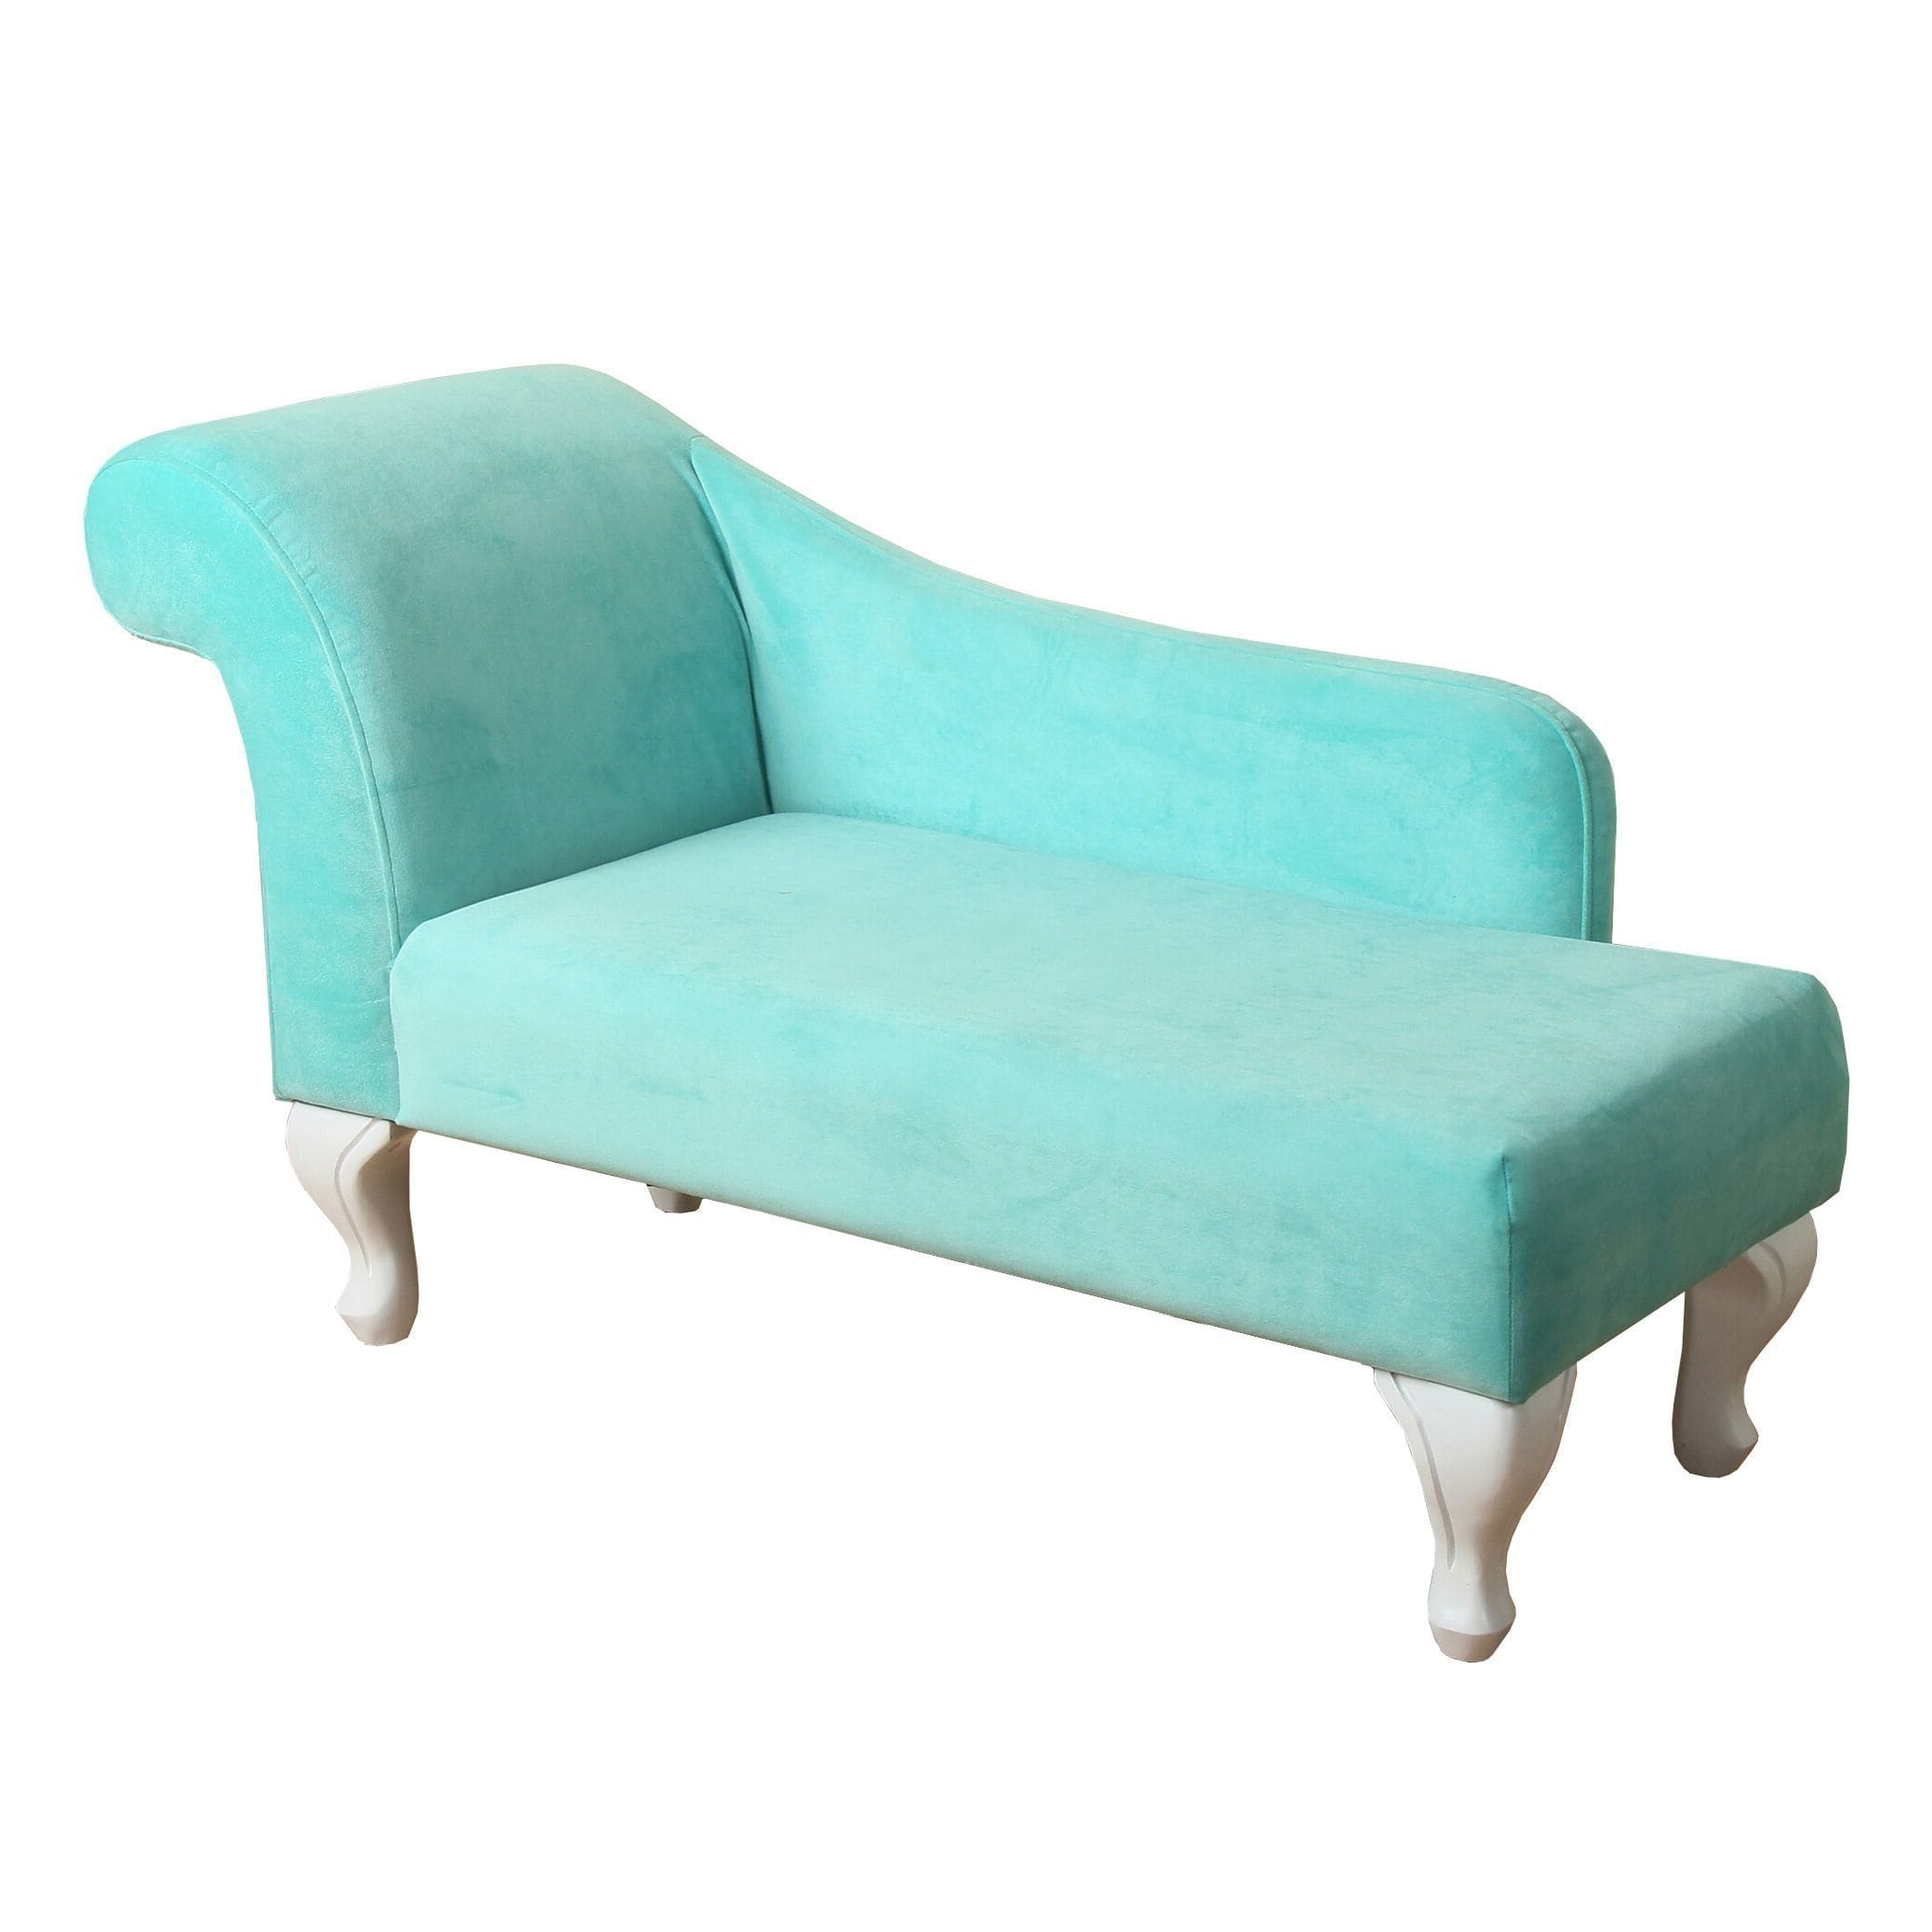 Homepop Juvenile Chaise Lounge In Aqua Turquoise Velvet – Free For Most Recently Released Turquoise Chaise Lounges (View 6 of 15)